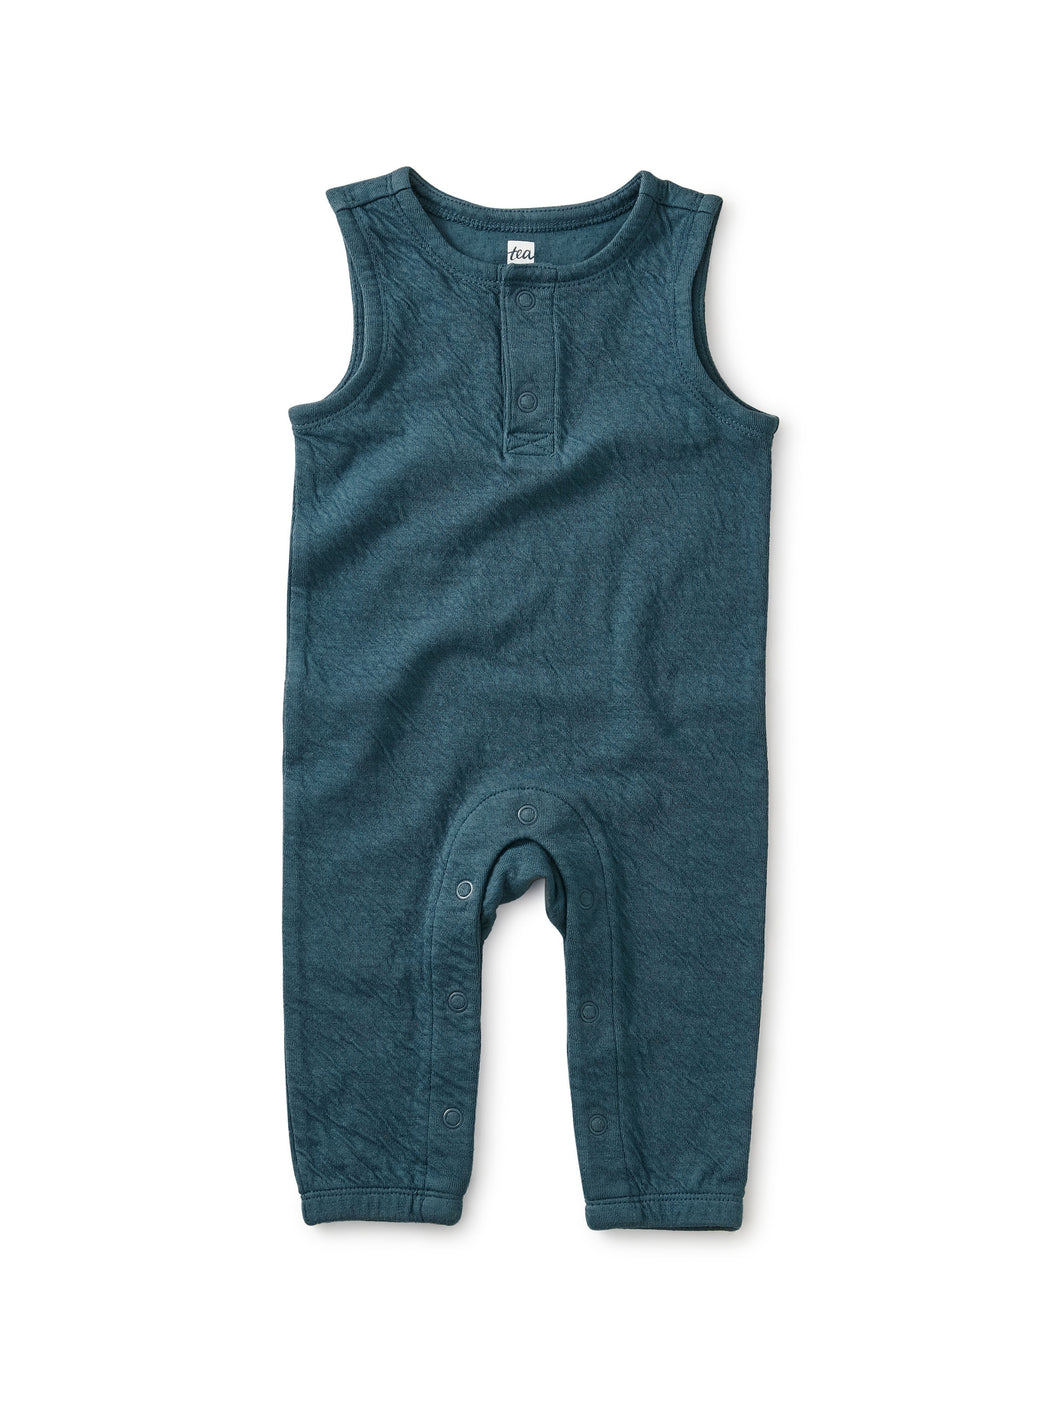 Tea Collection A Crinkle In Time Teal Romper - Indian Teal - Bloom Kids Collection - Tea Collection